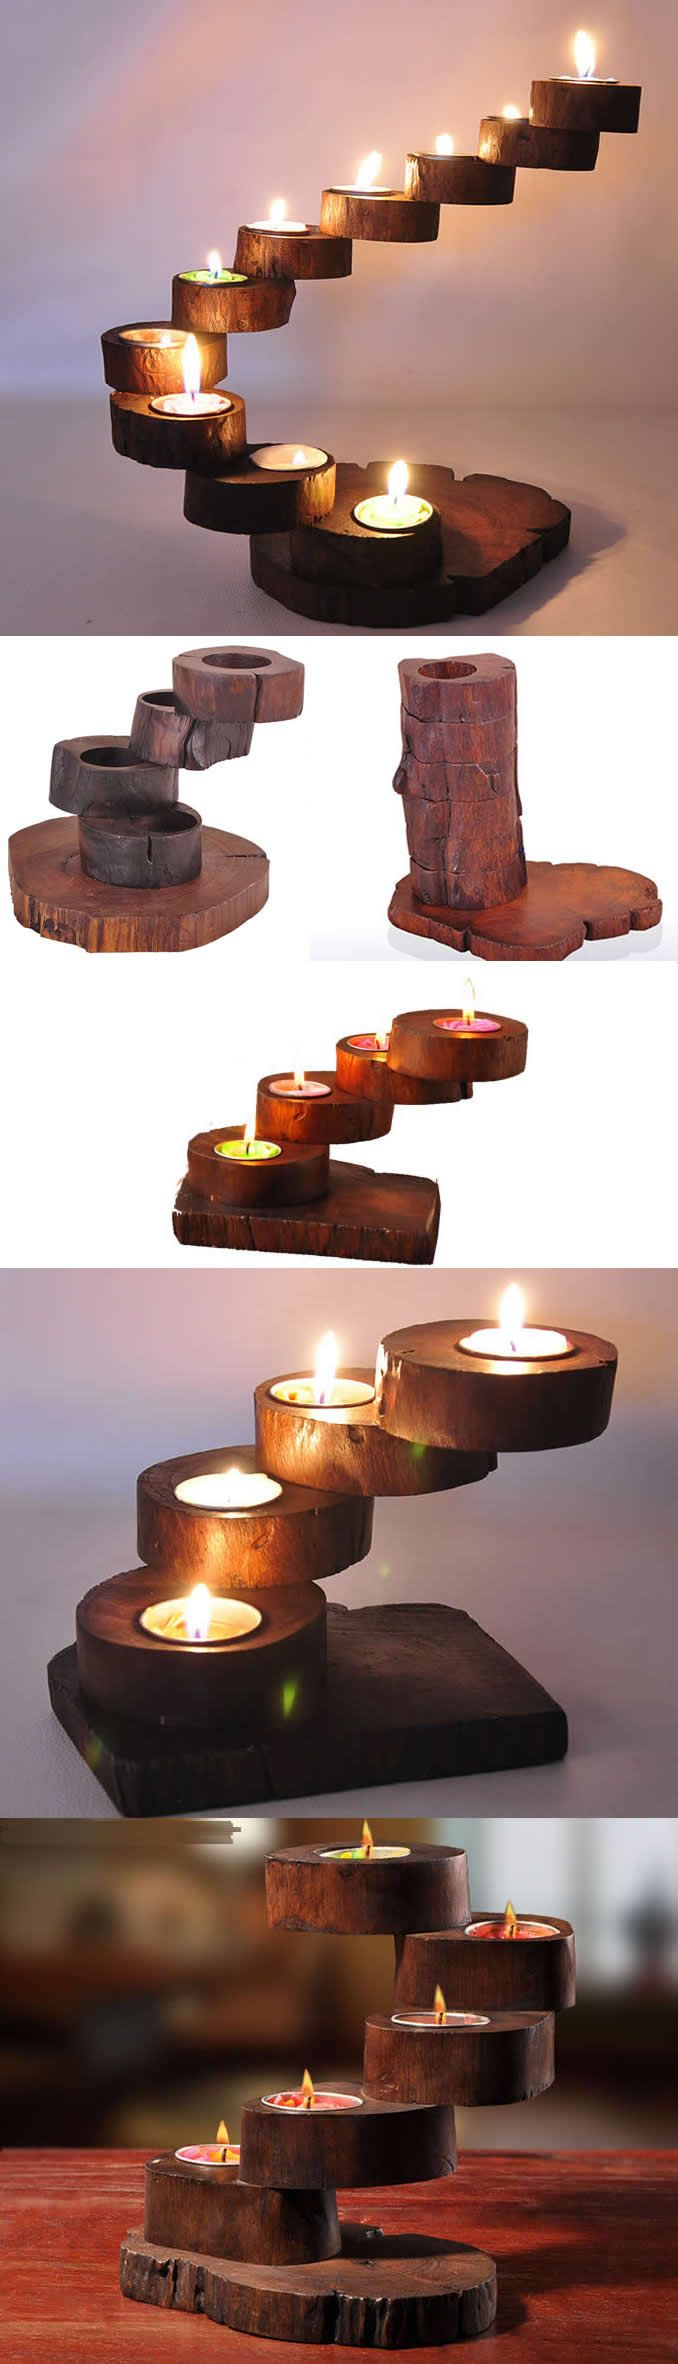 Vintage wooden spiral staircase tealight candle holder candle